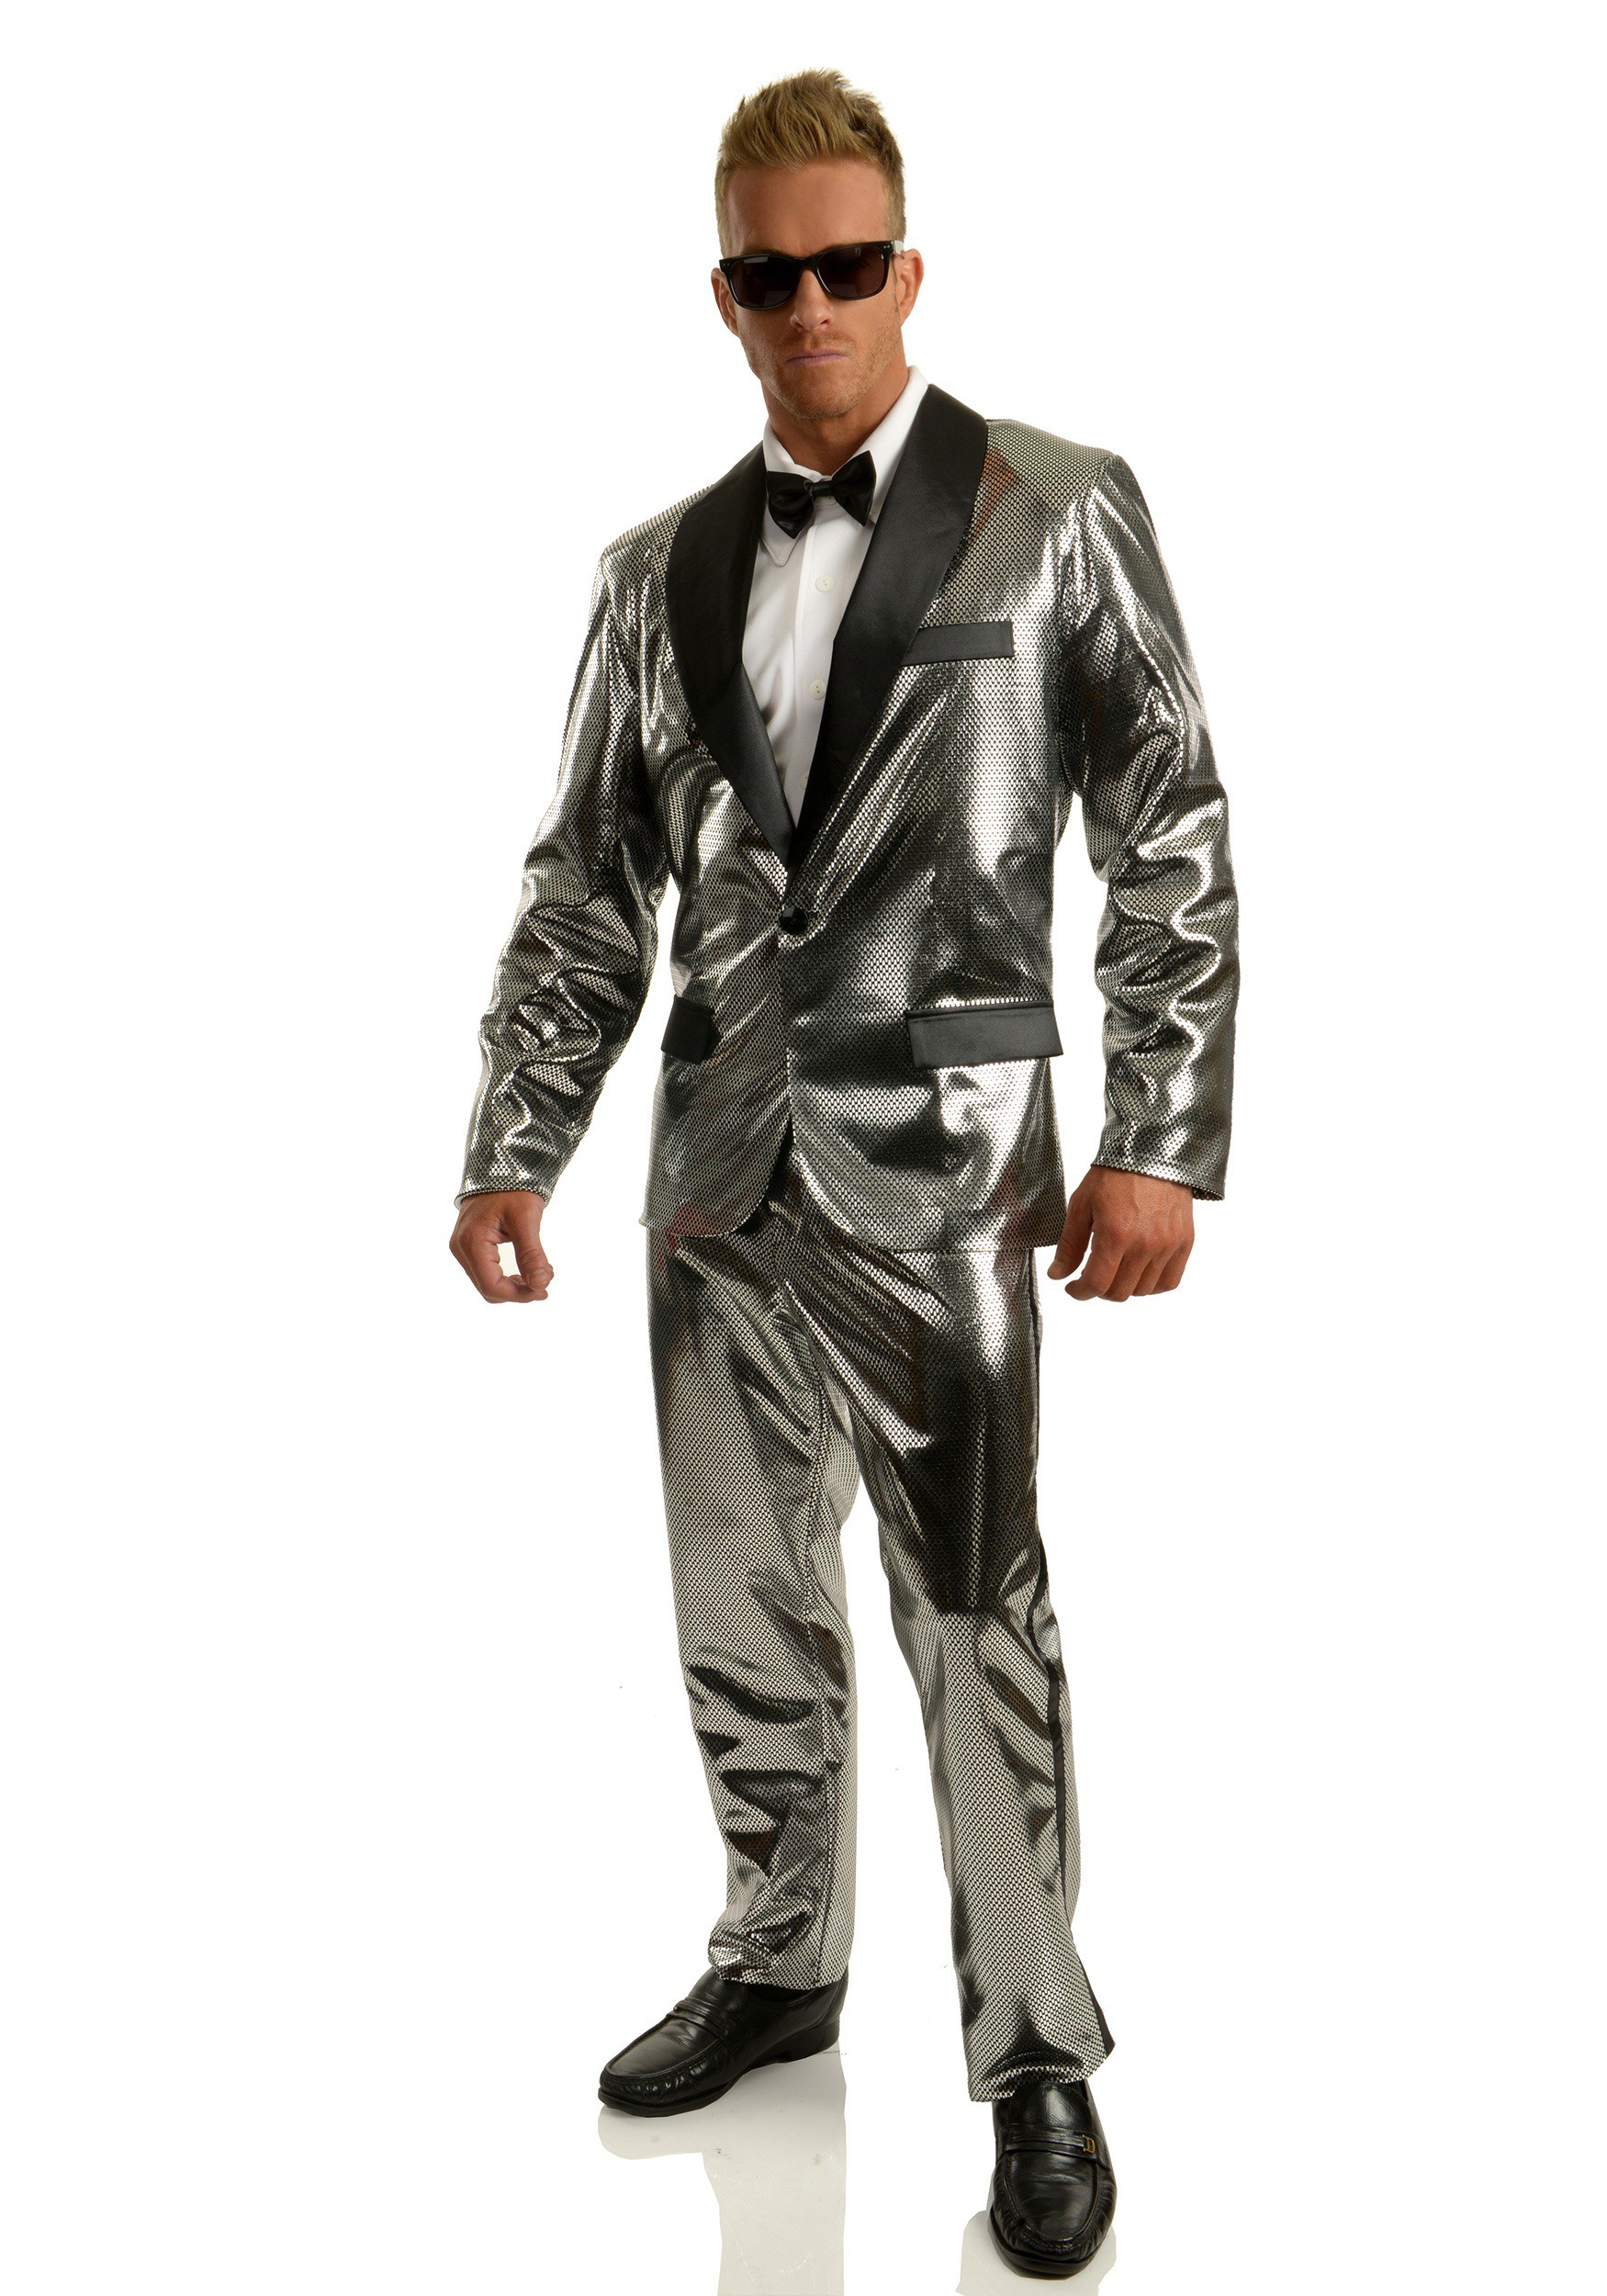 e1102bda2b0e mens-silver-disco-ball-tuxedo-costume.jpg